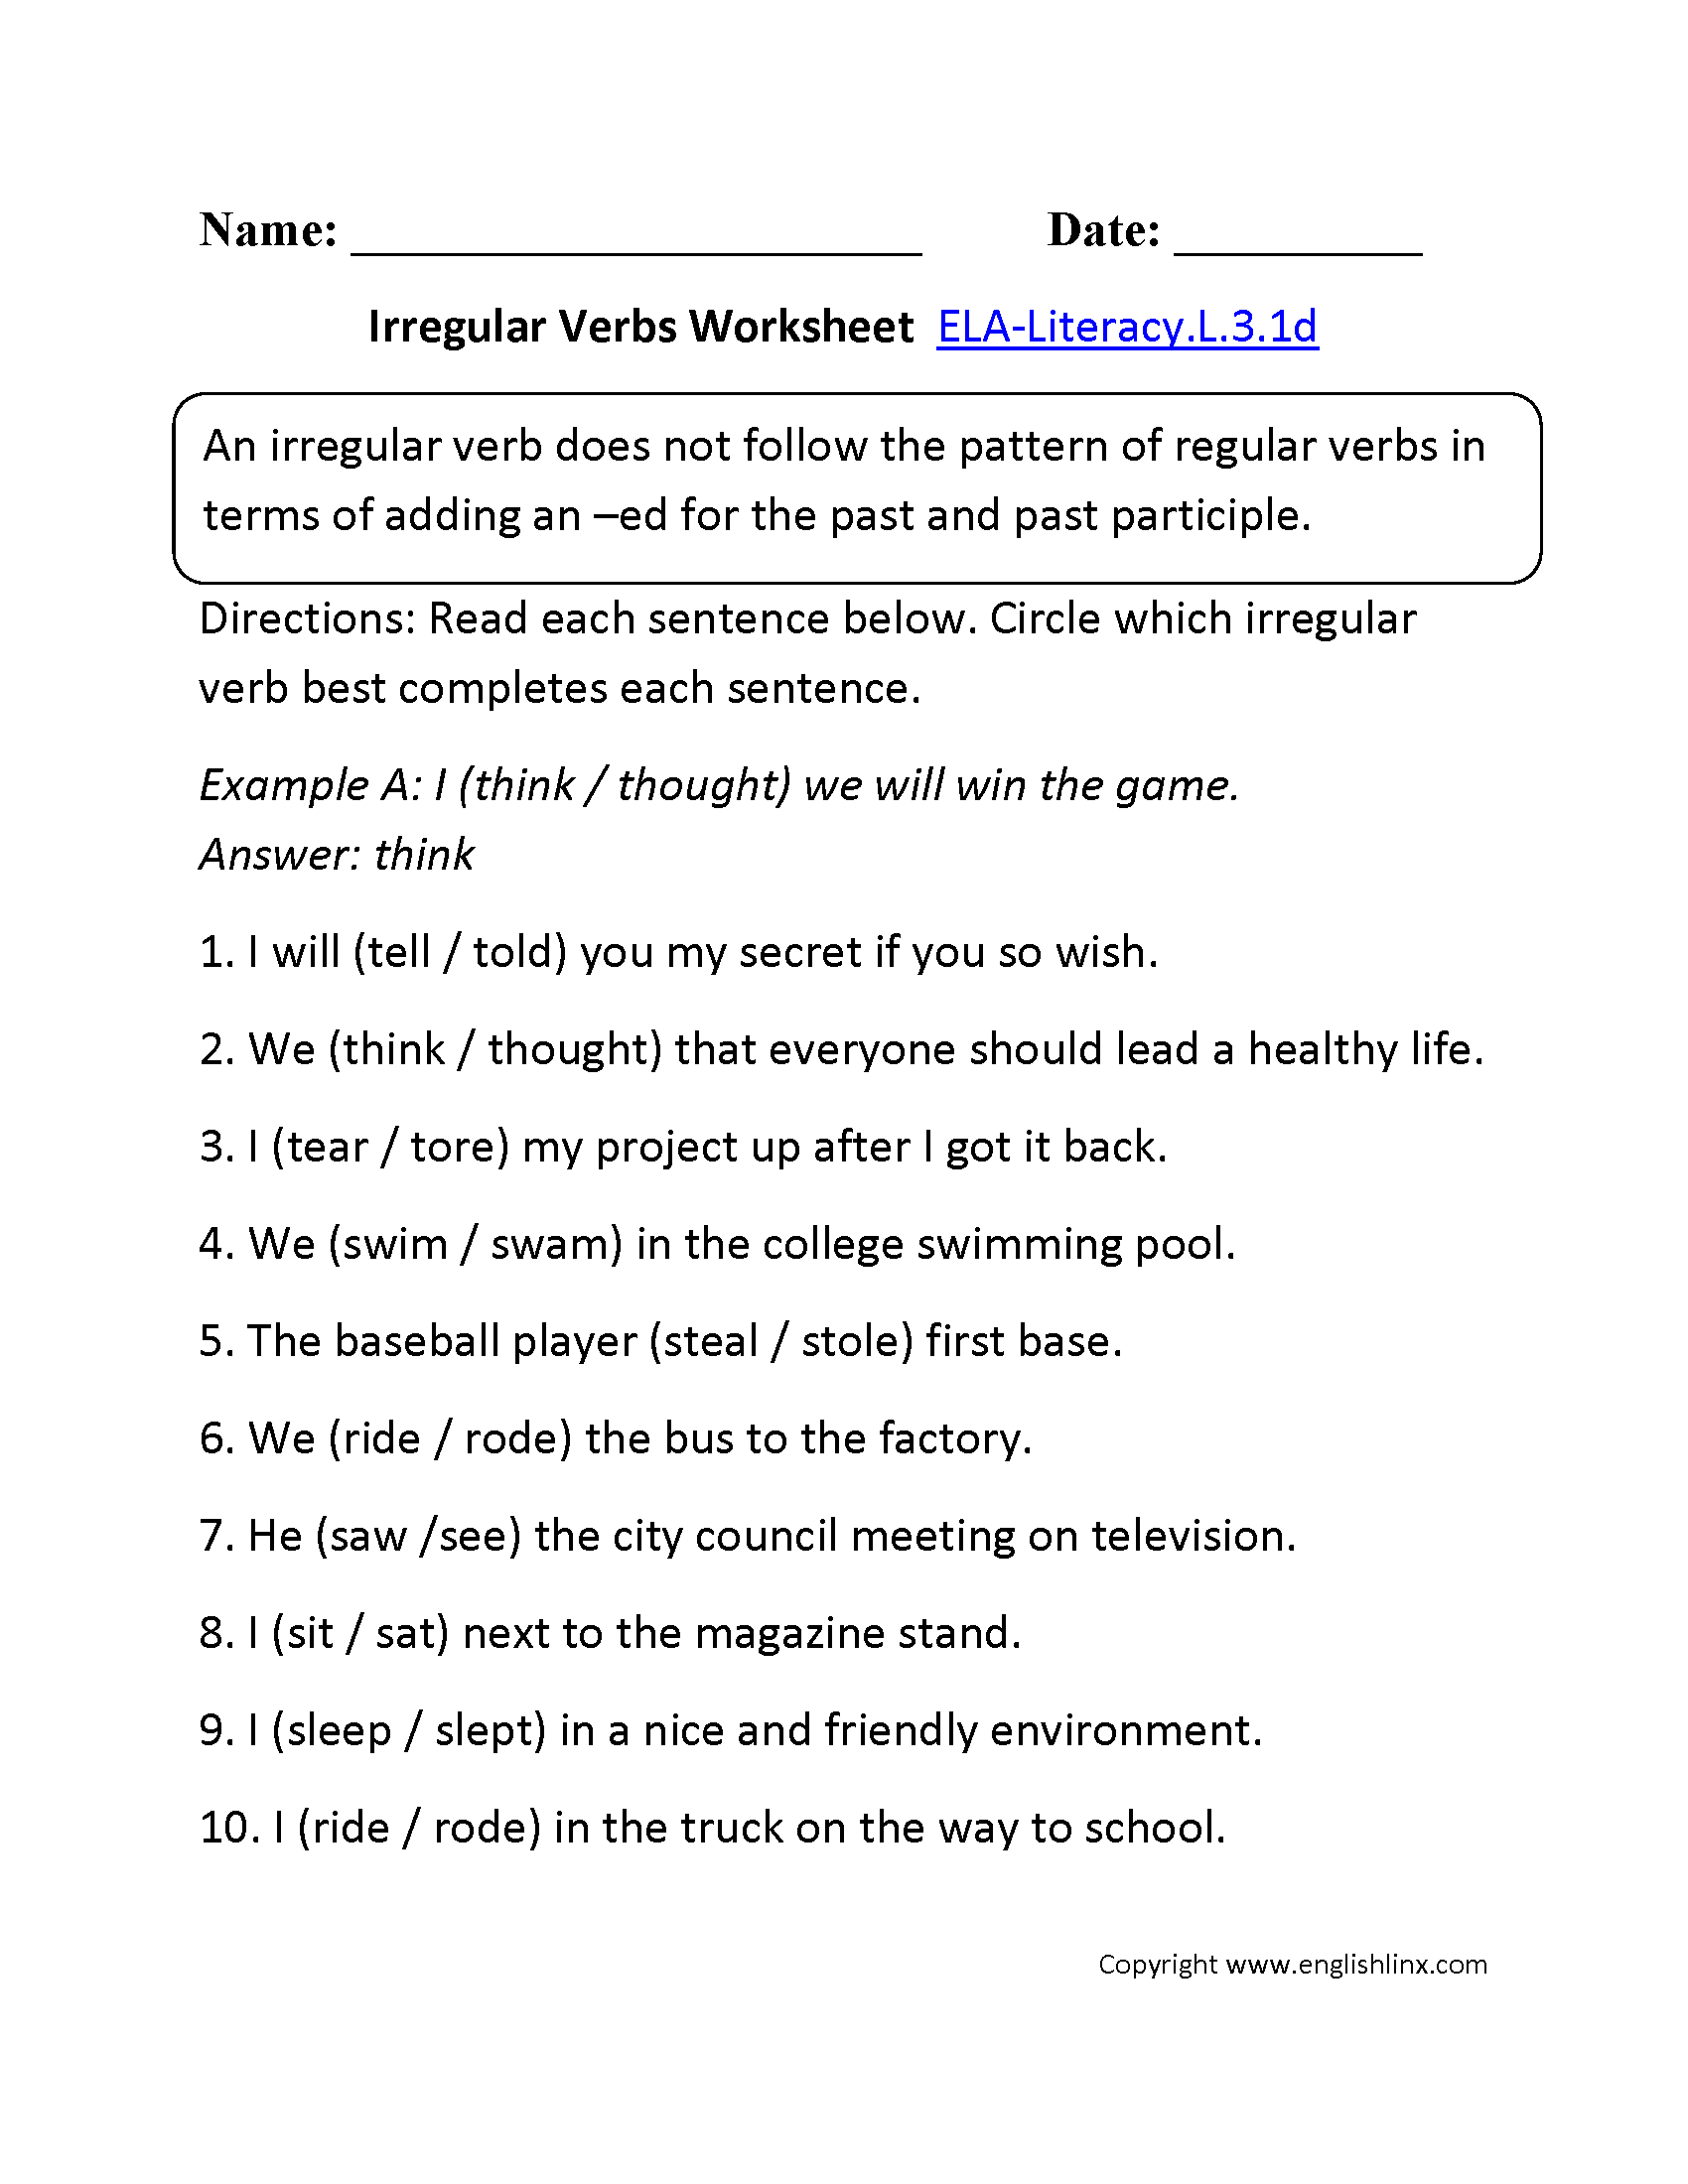 Irregular Verbs Worksheet 1 Ela Literacy L 3 1d Language Worksheet